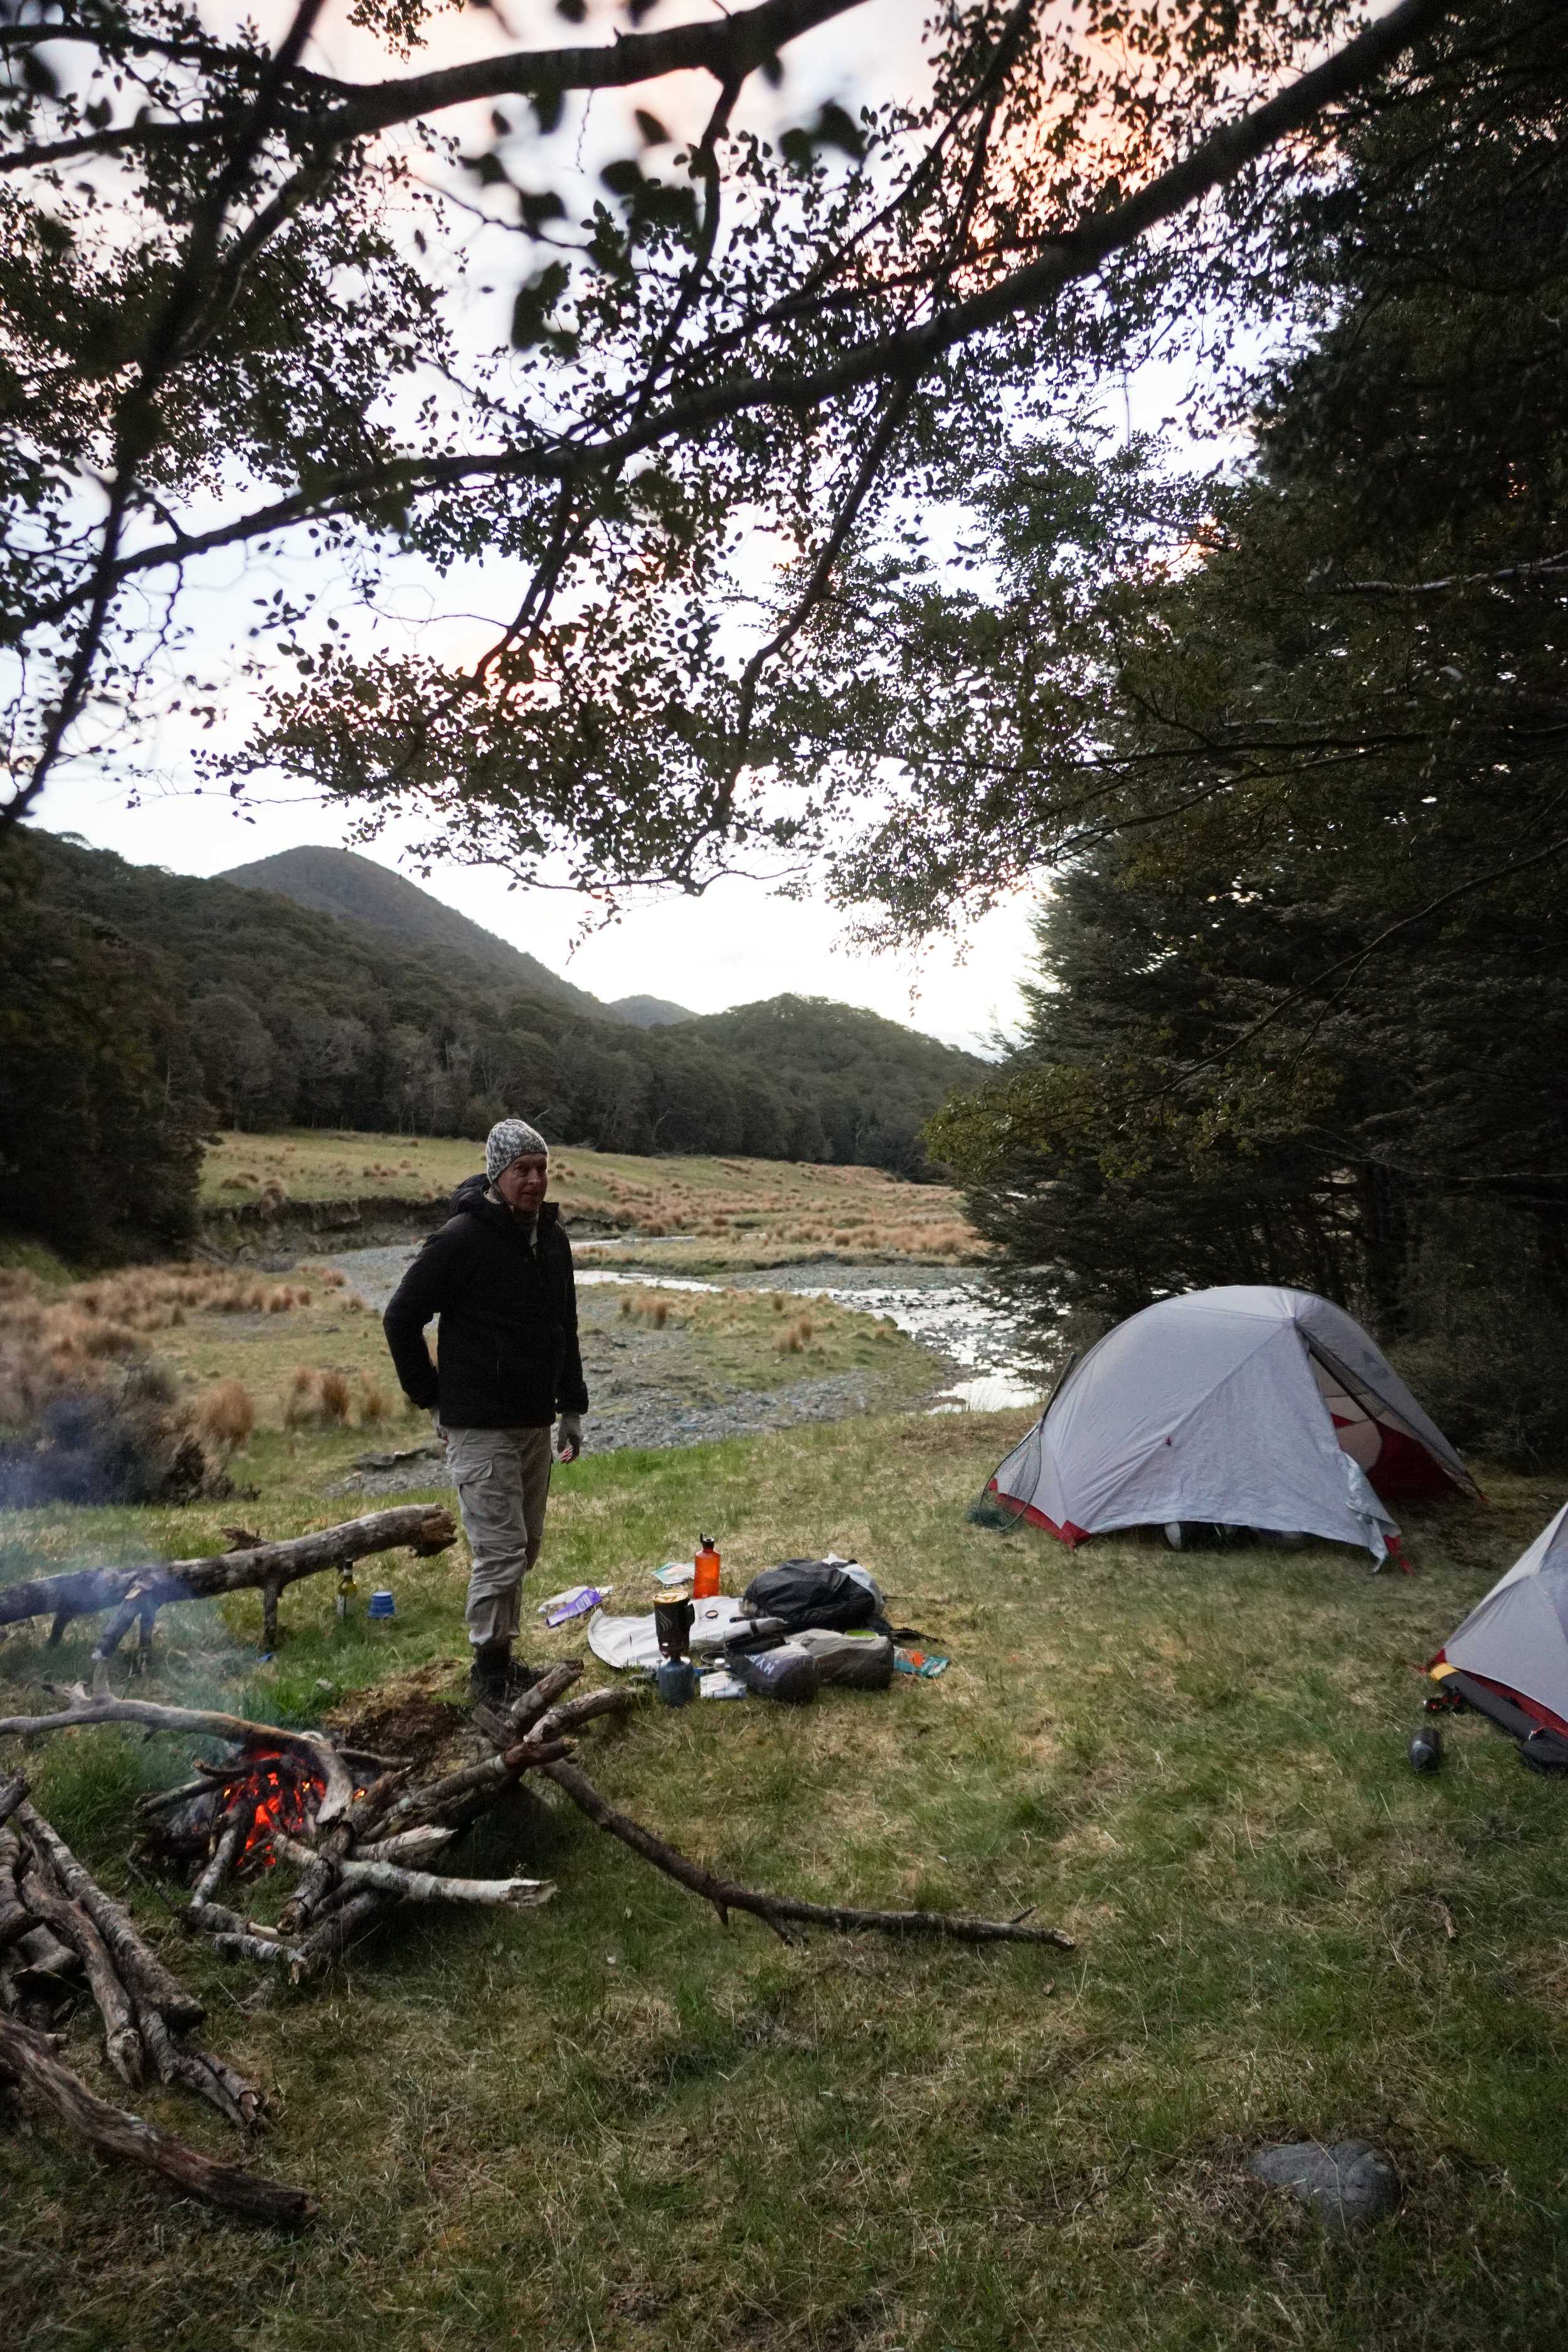 Camping and fly fishing in New Zealand backcountry